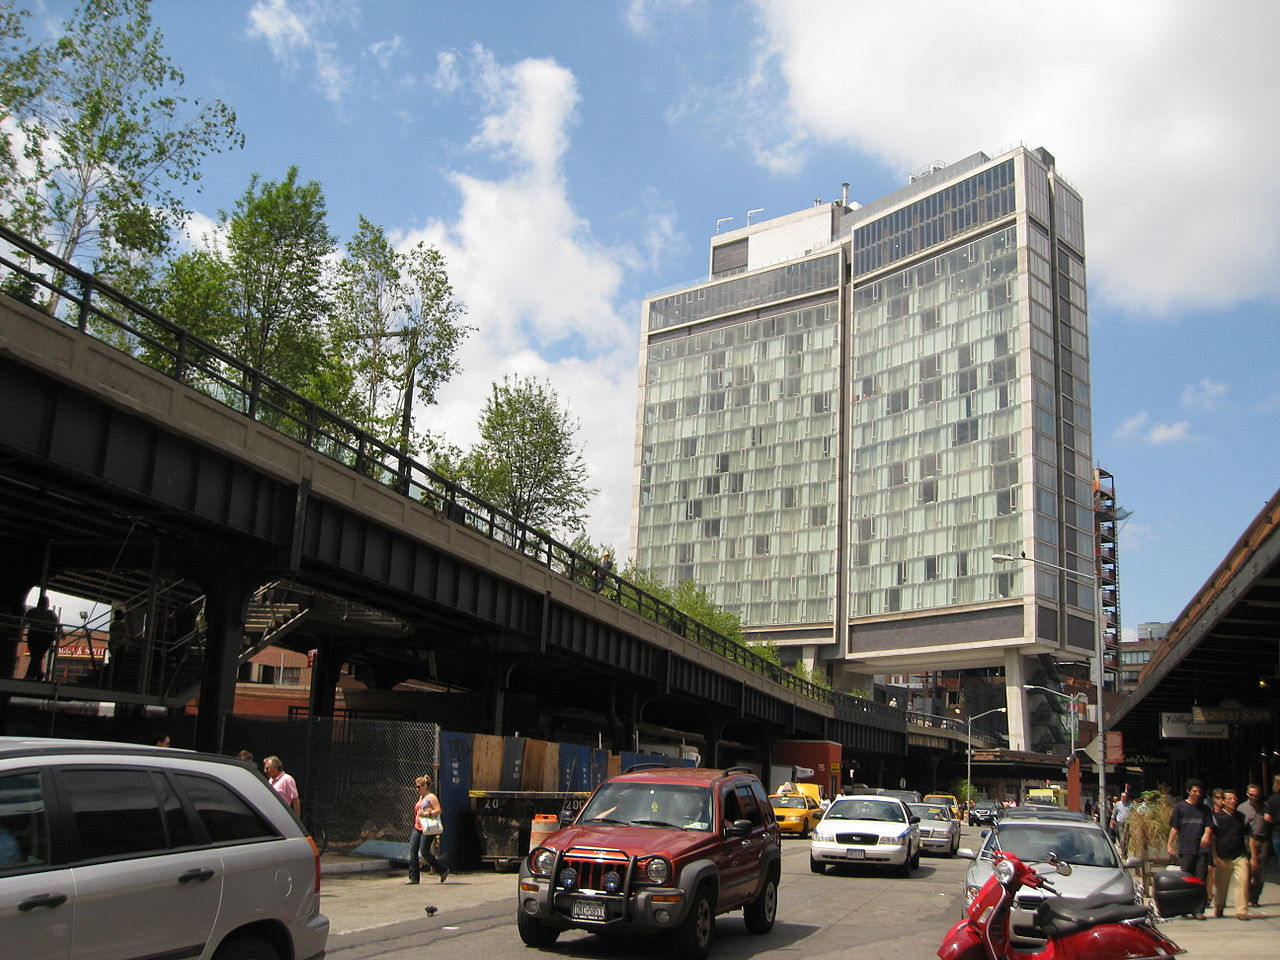 1280px-Highline_NYC_4043997124_cbcac90545